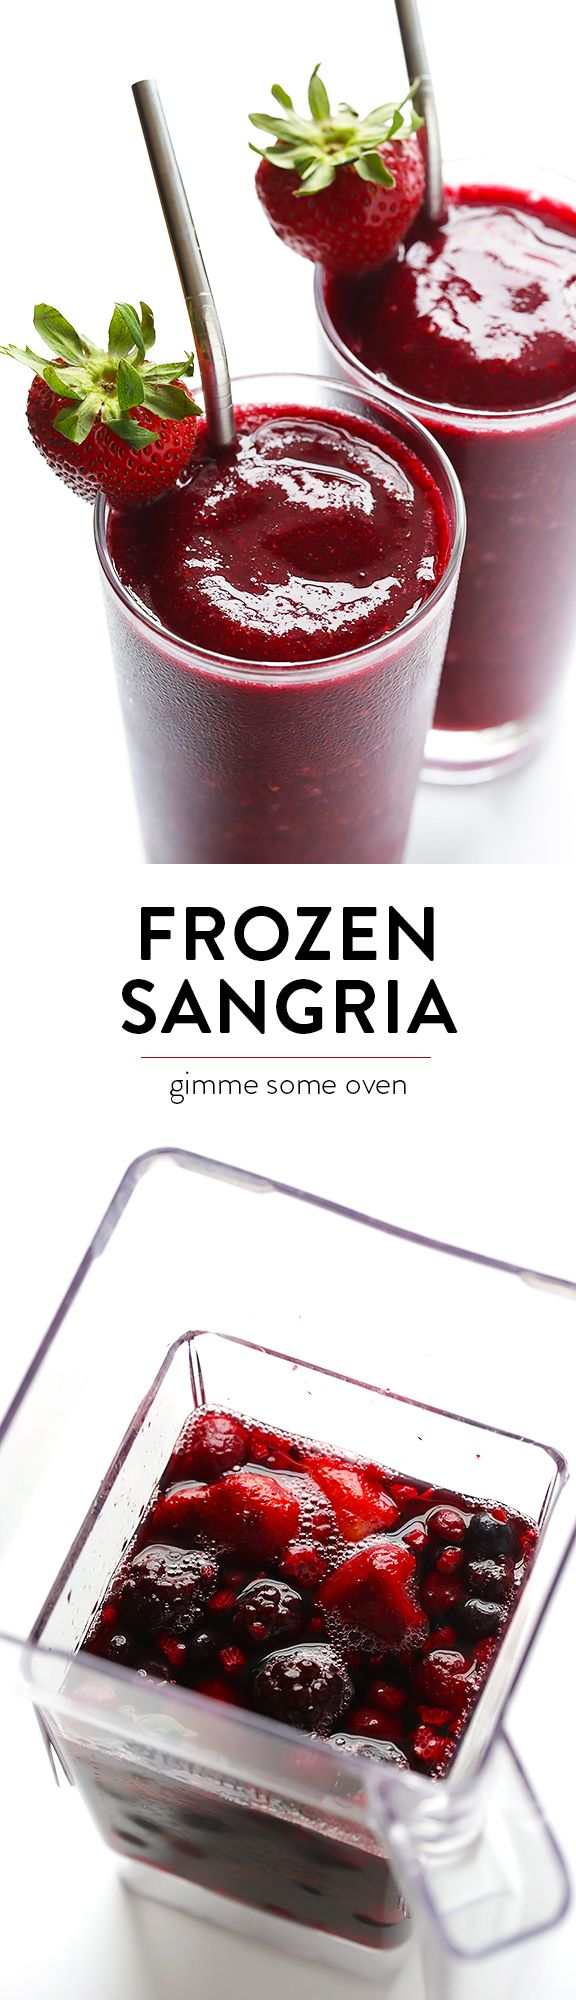 Frozen Sangria - Ready to go in about 2 minutes, and SO tasty!